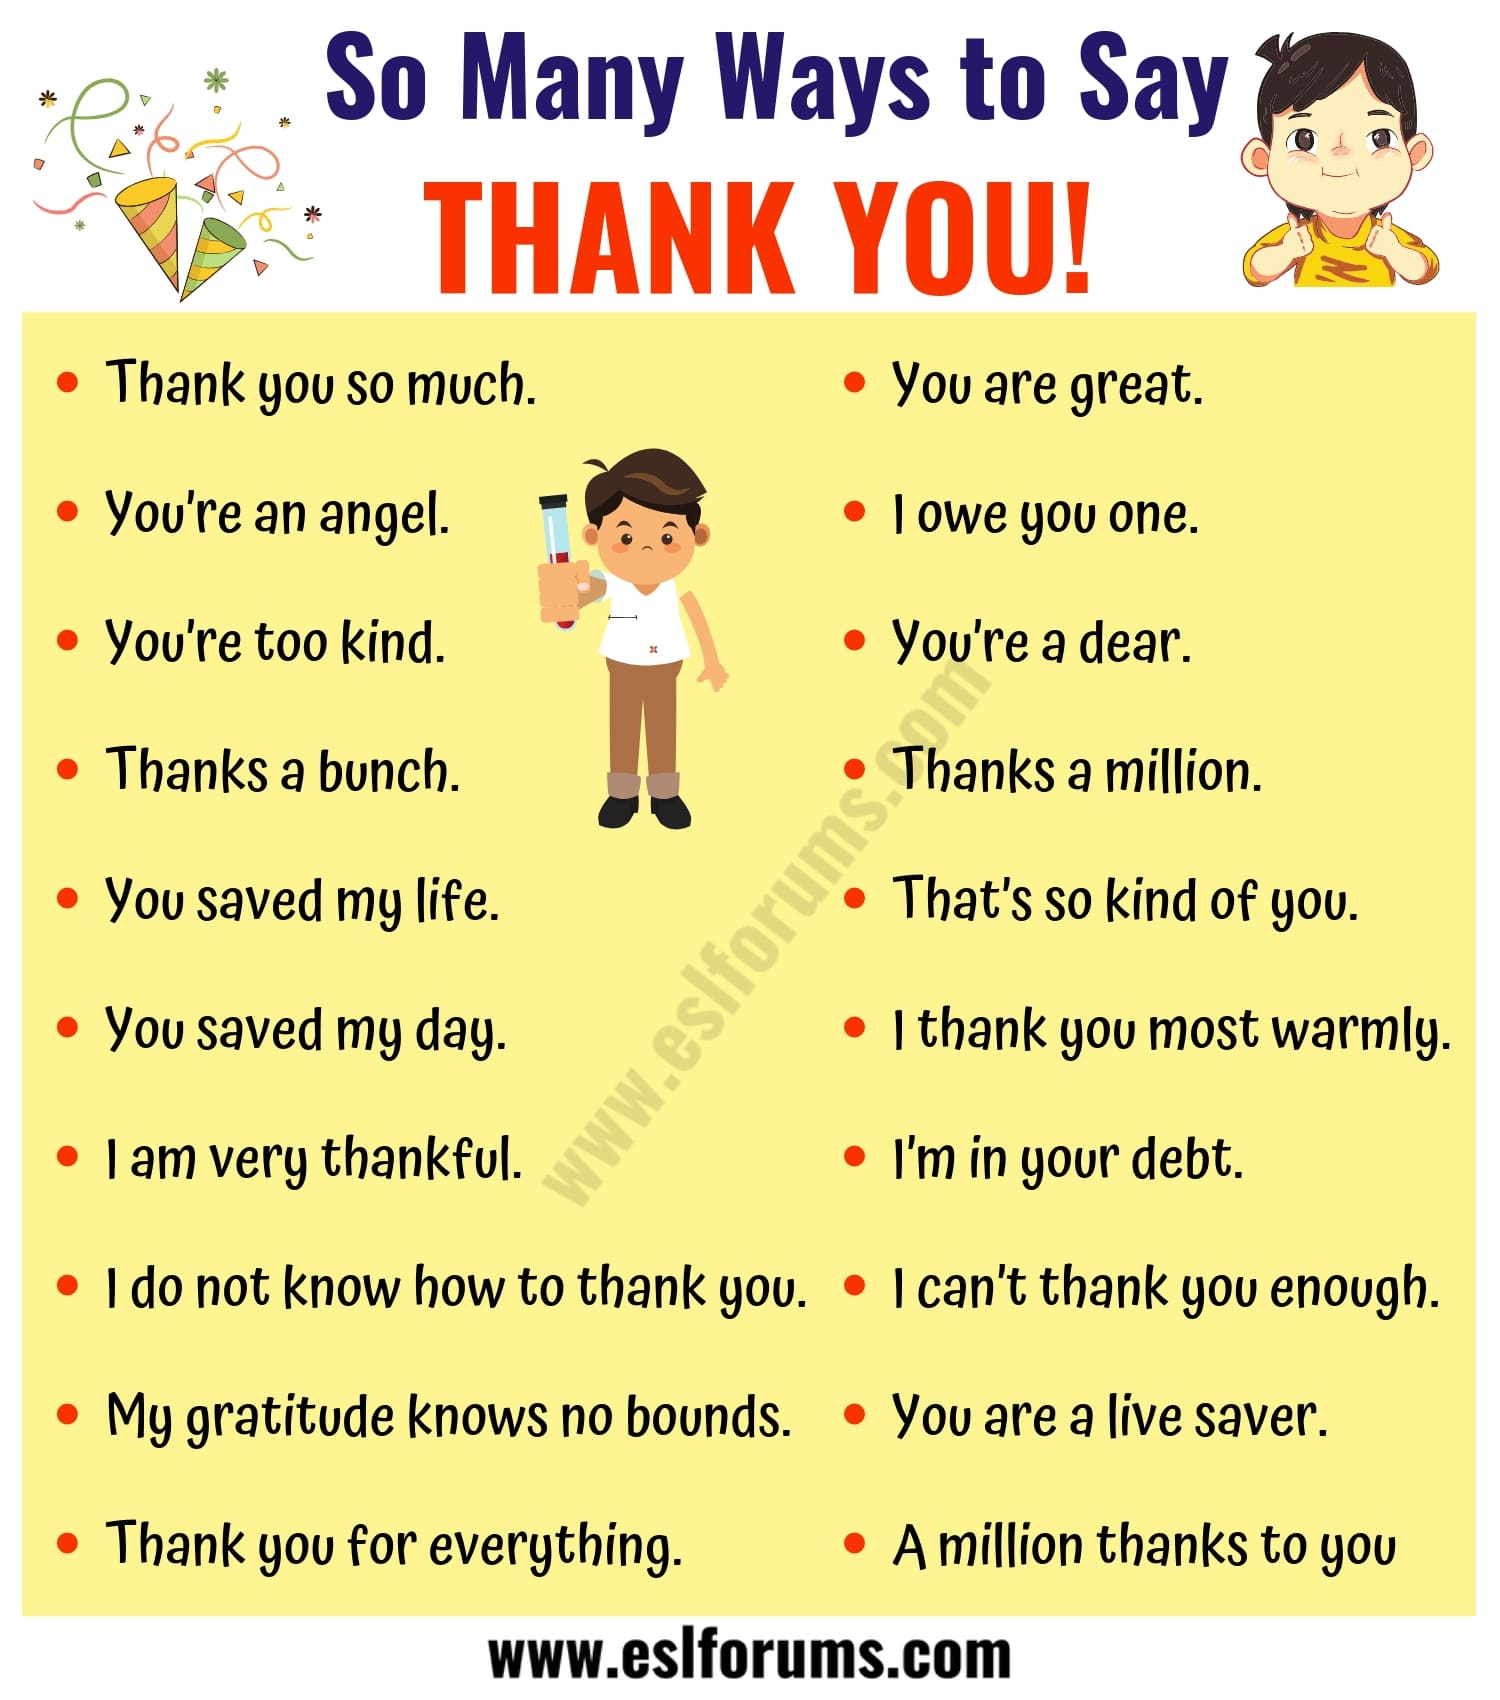 41 Creative Ways to Say THANK YOU | THANK YOU Synonym List